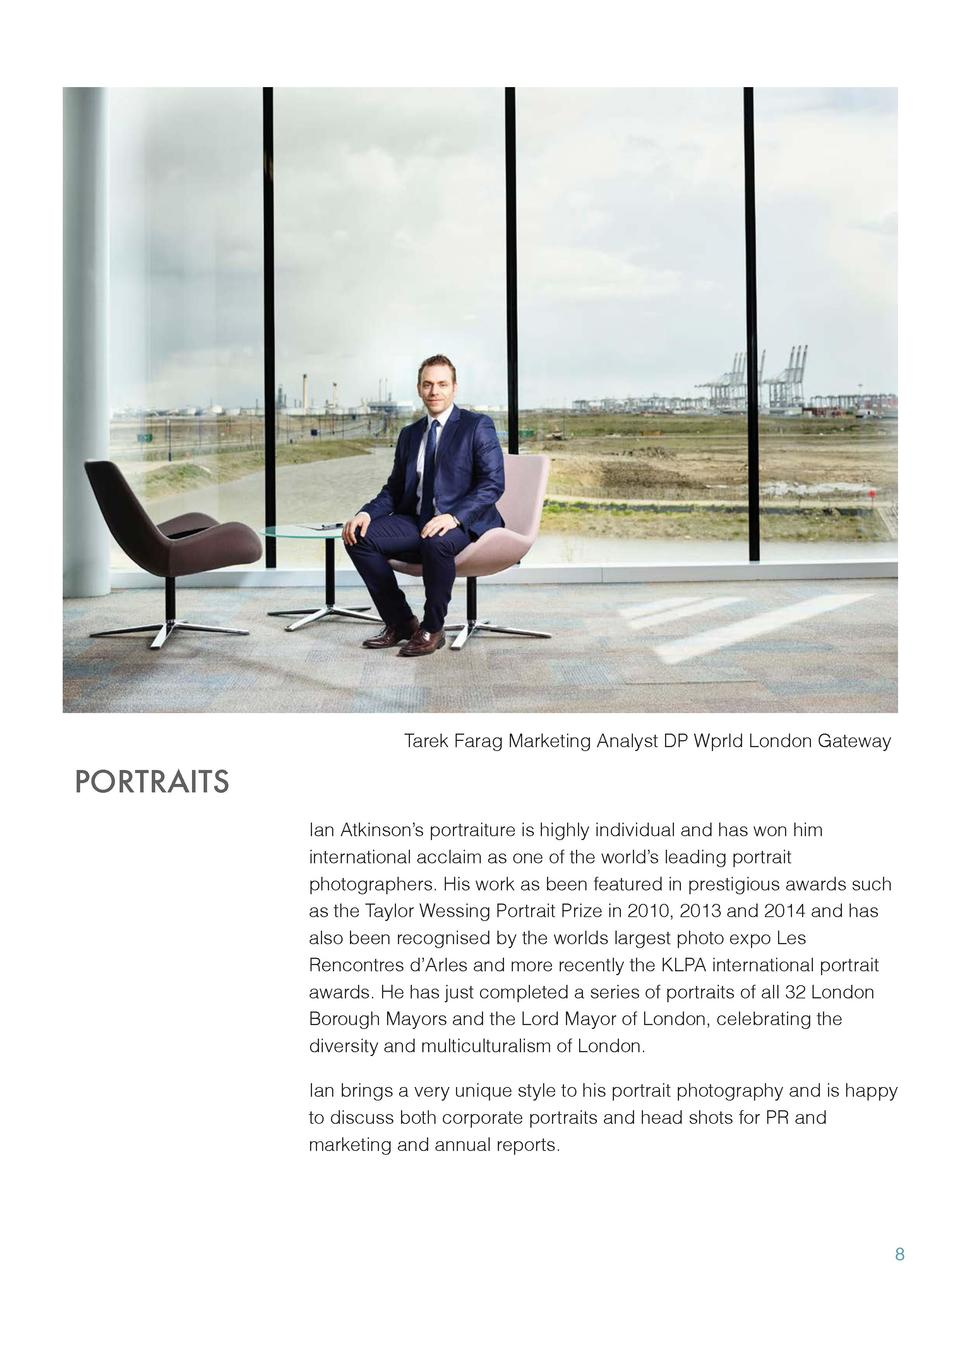 Tarek Farag Marketing Analyst DP Wprld London Gateway  PORTRAITS Ian Atkinson   s portraiture is highly individual and has...